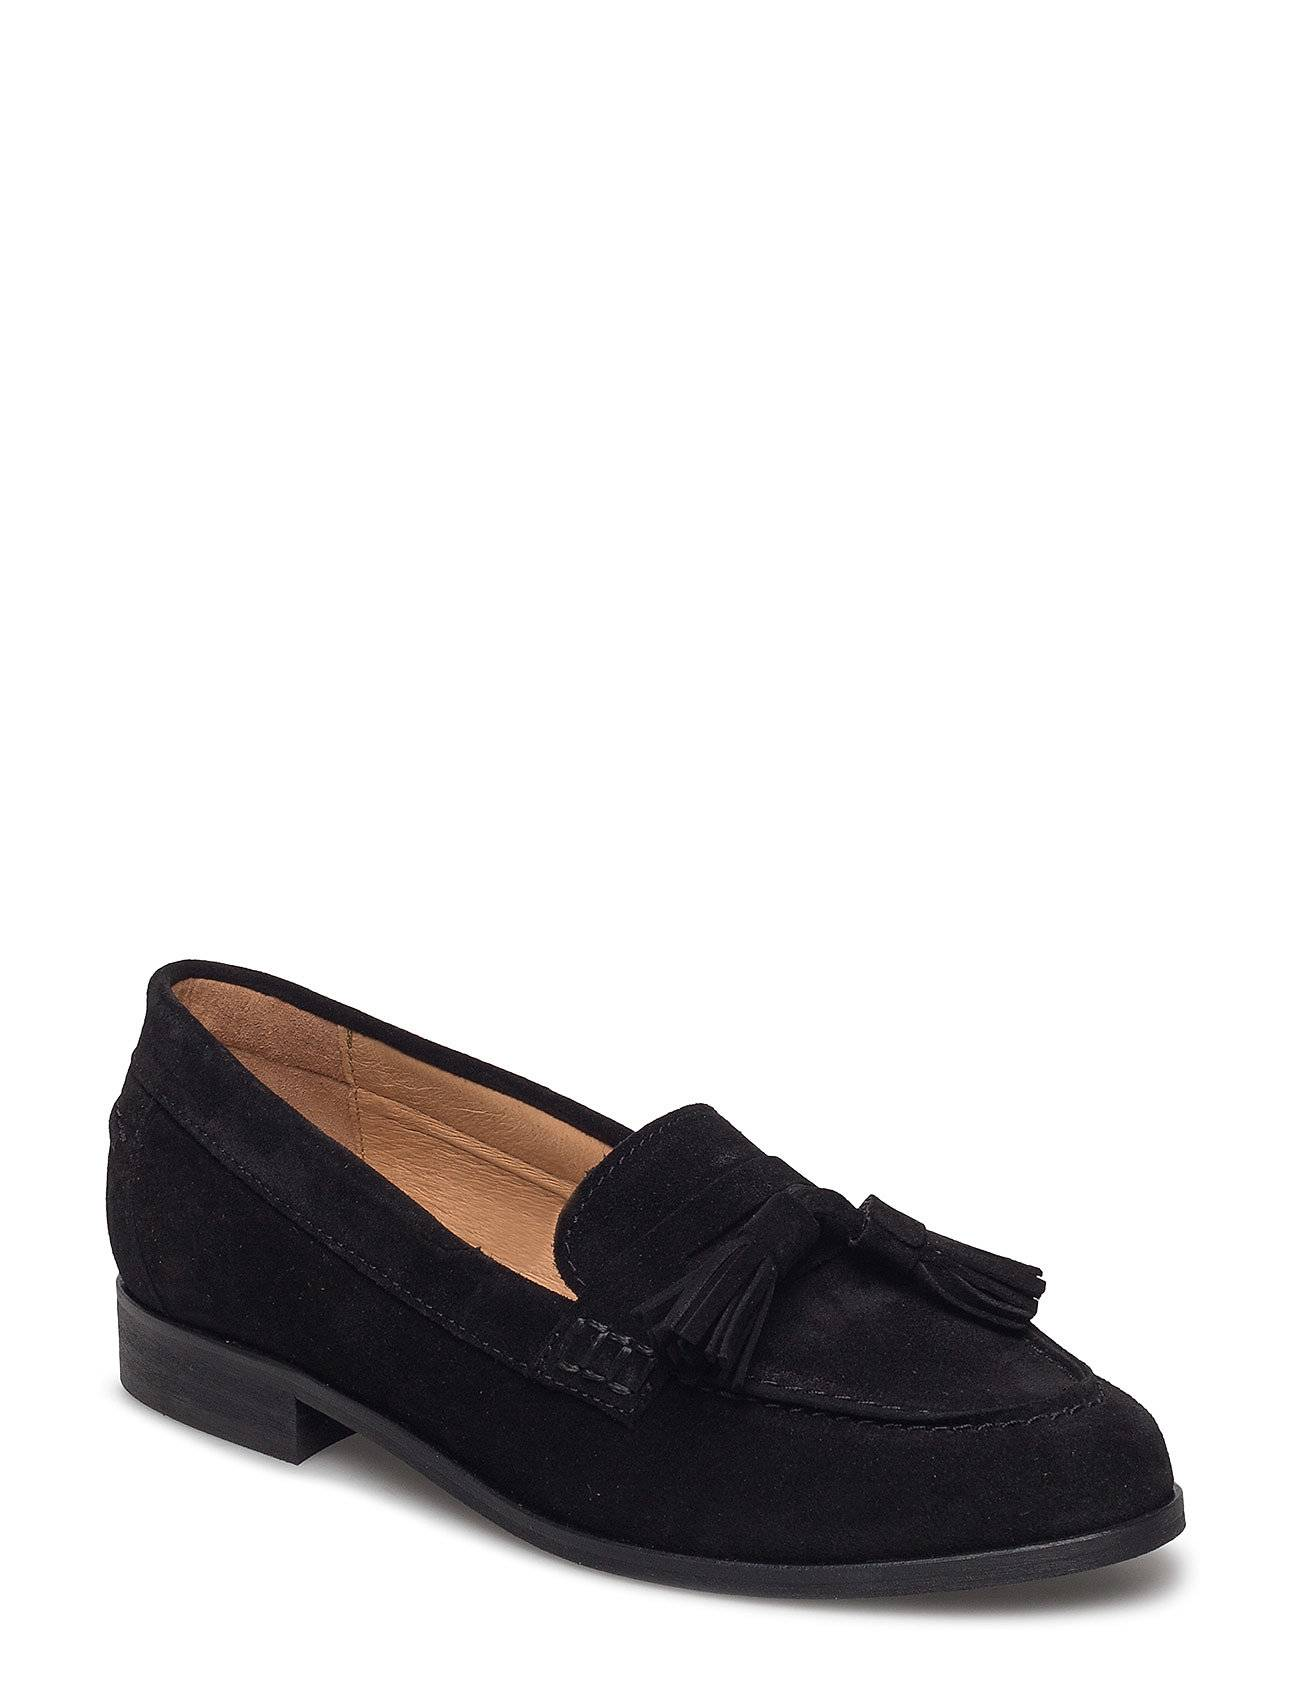 Morris Lady Lady Loafer